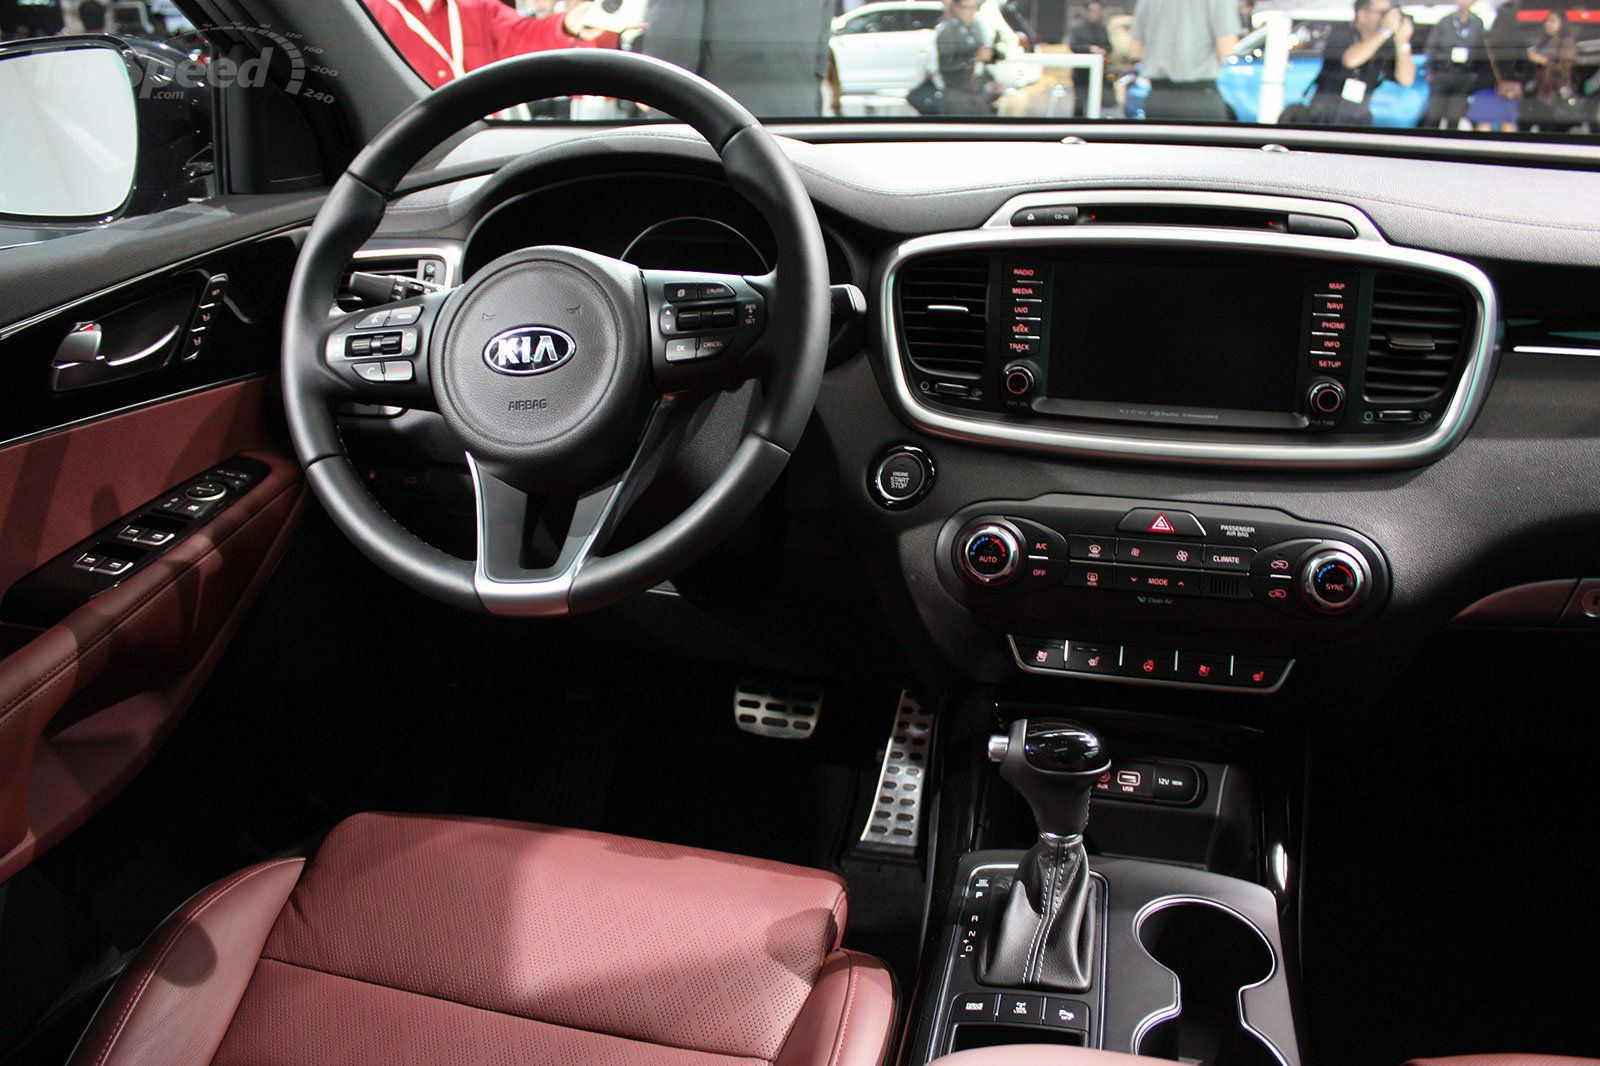 2016 kia soul interior google search 2016 kia soul pinterest kia soul interior kia soul. Black Bedroom Furniture Sets. Home Design Ideas